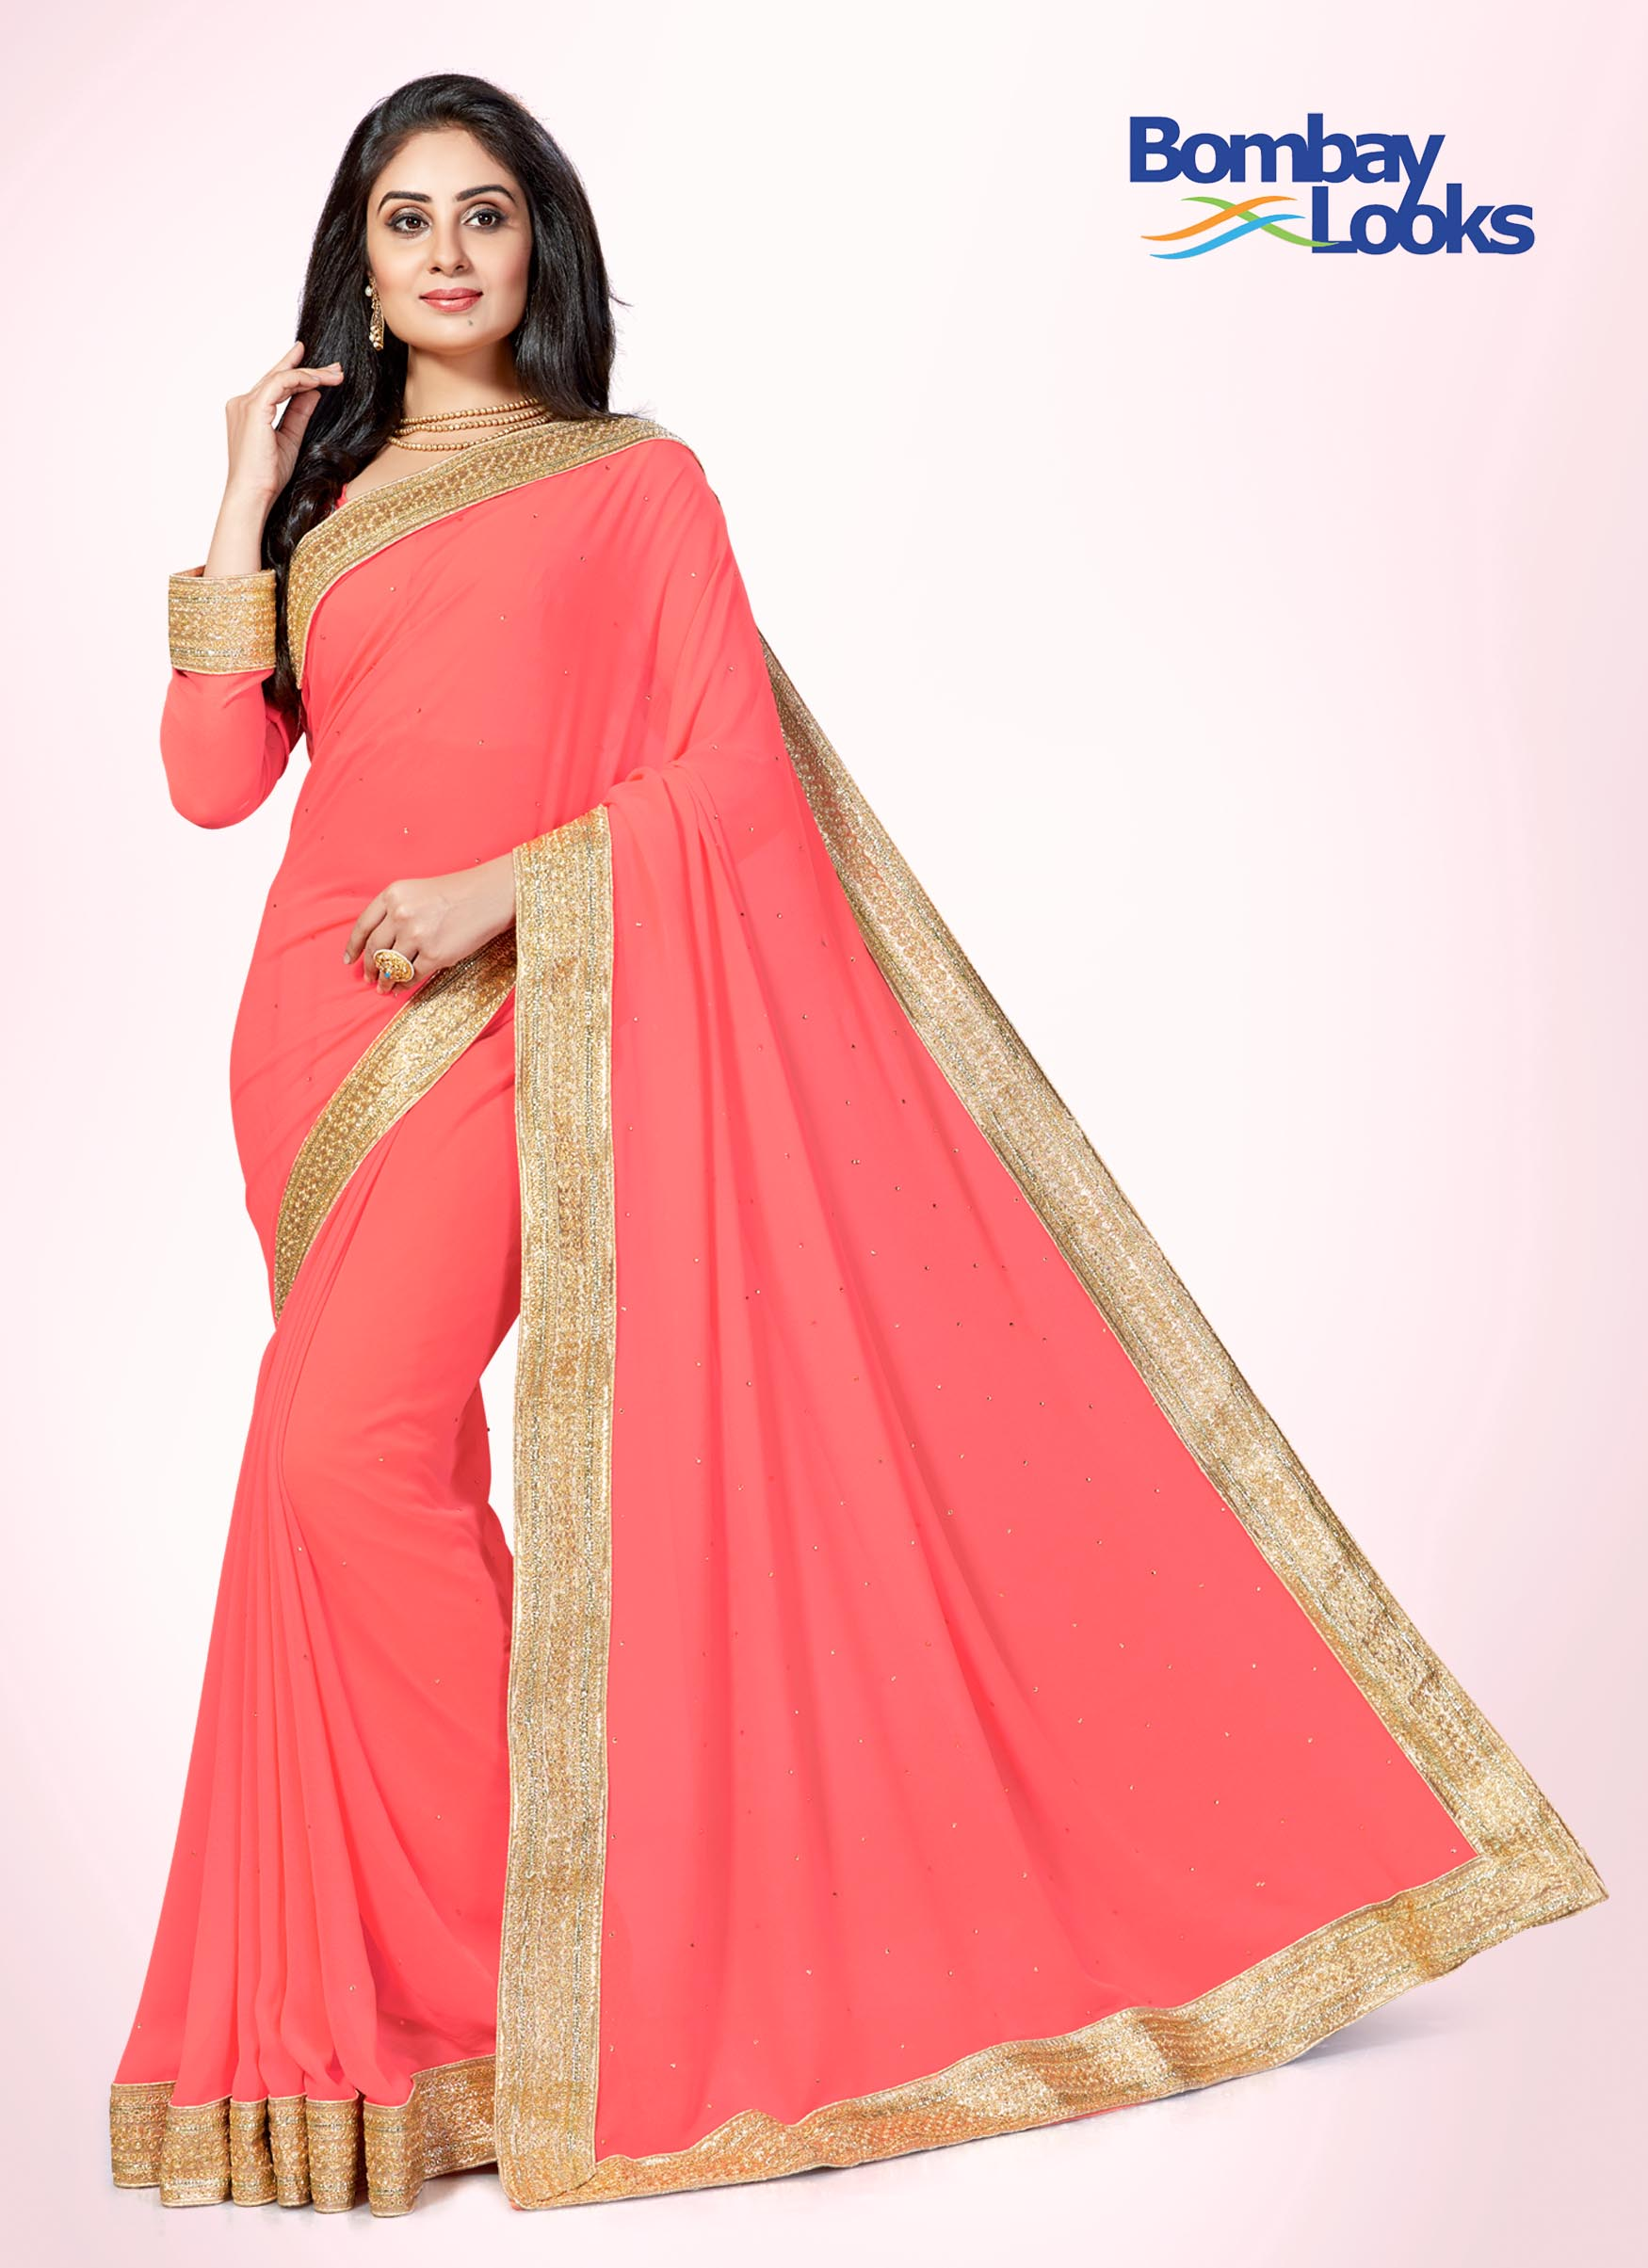 Flirty pink georgette saree with embroidered gold border